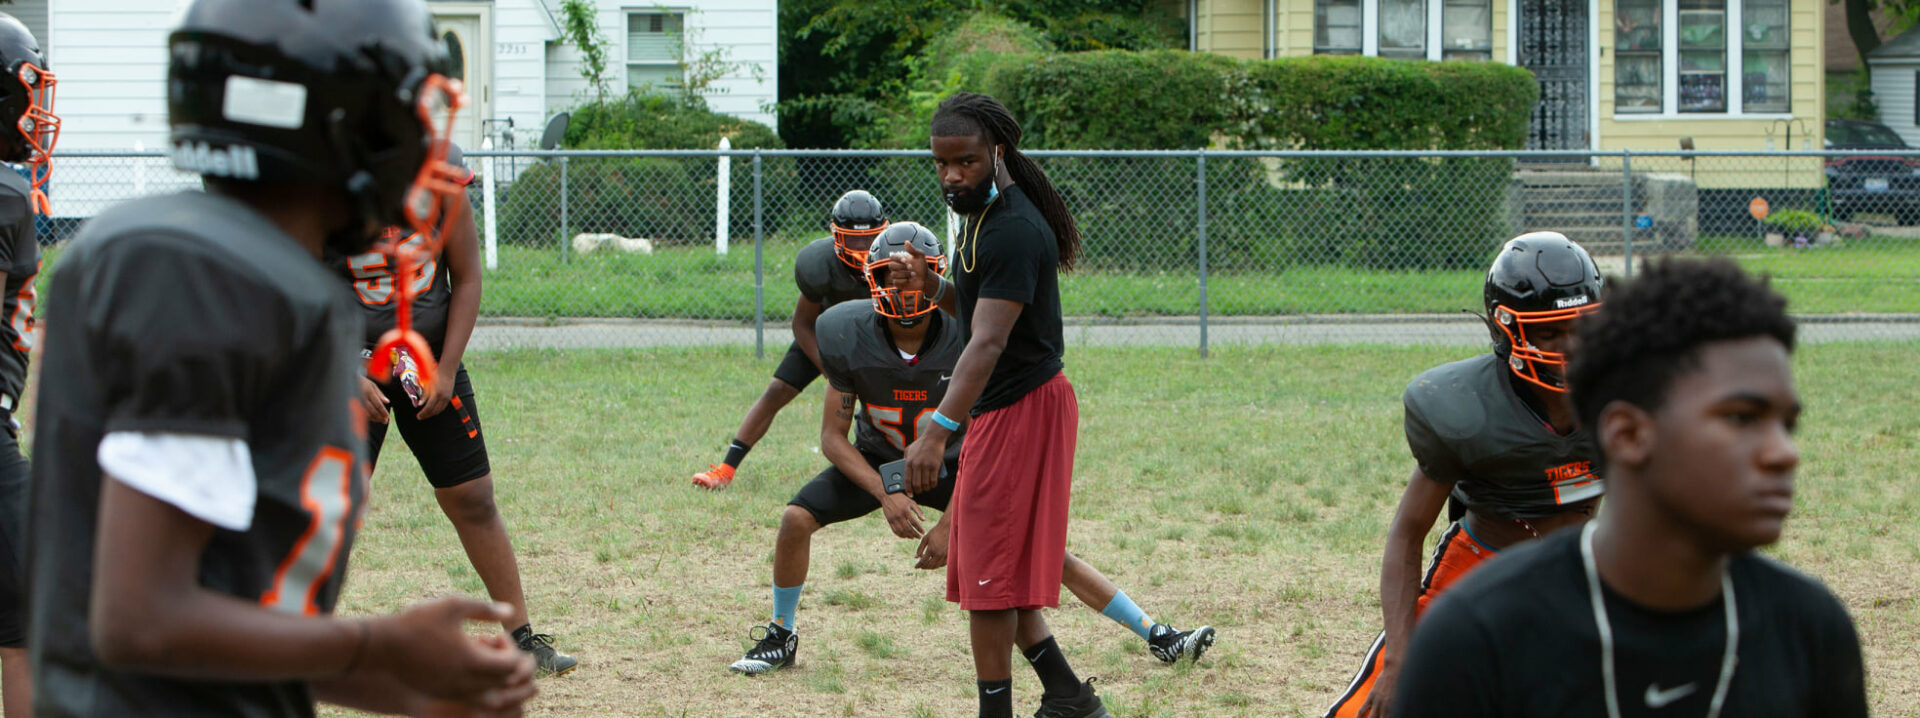 Muskegon Heights looks to remain undefeated, Coach Parker ecstatic after opening football wins